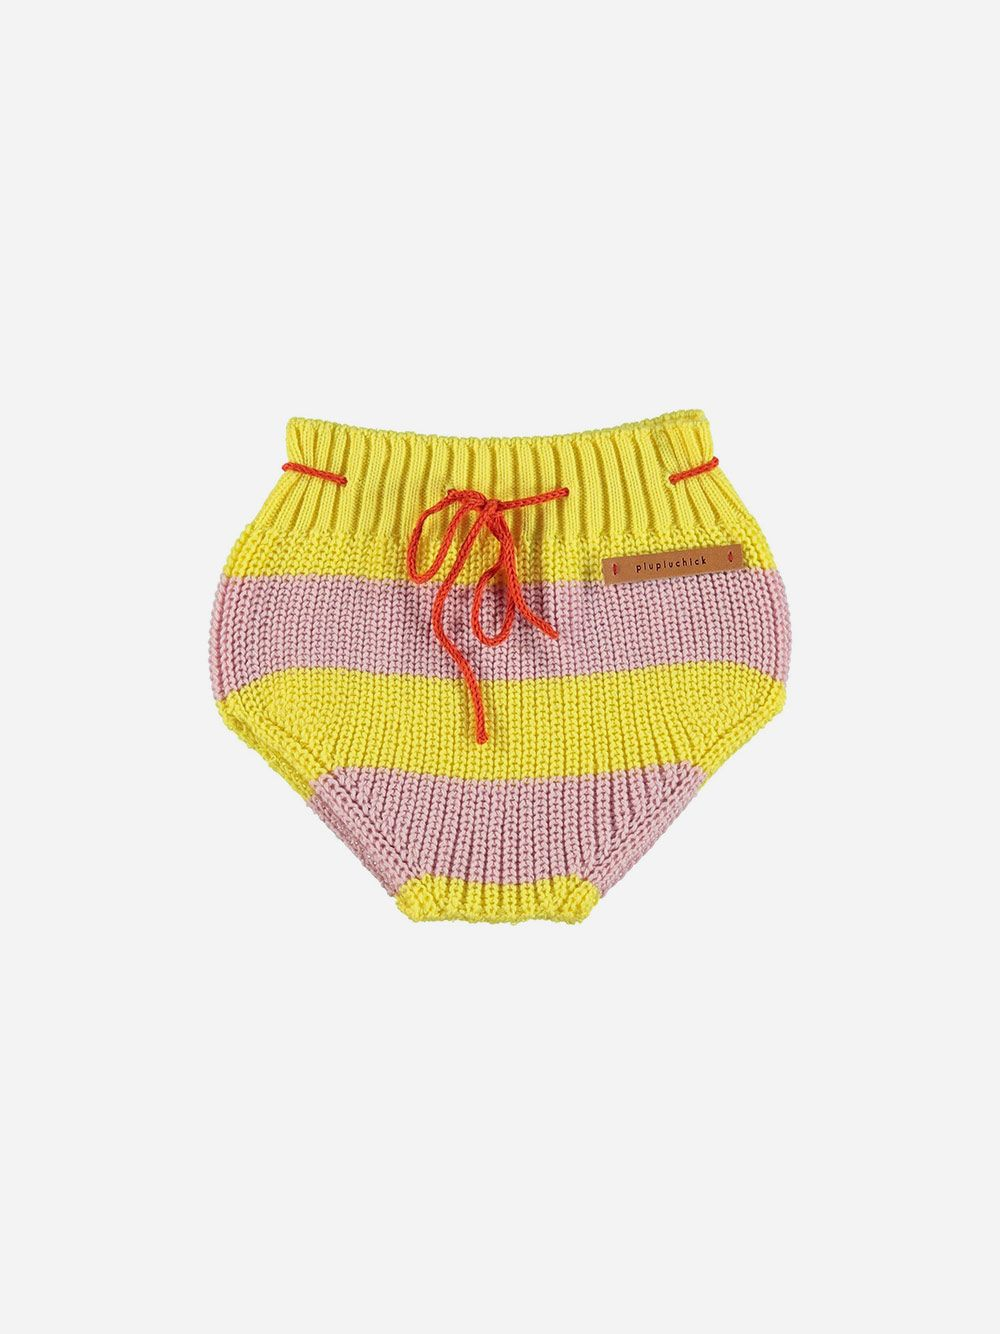 Knitted Baby Bloomer Pink & Yellow Stripes